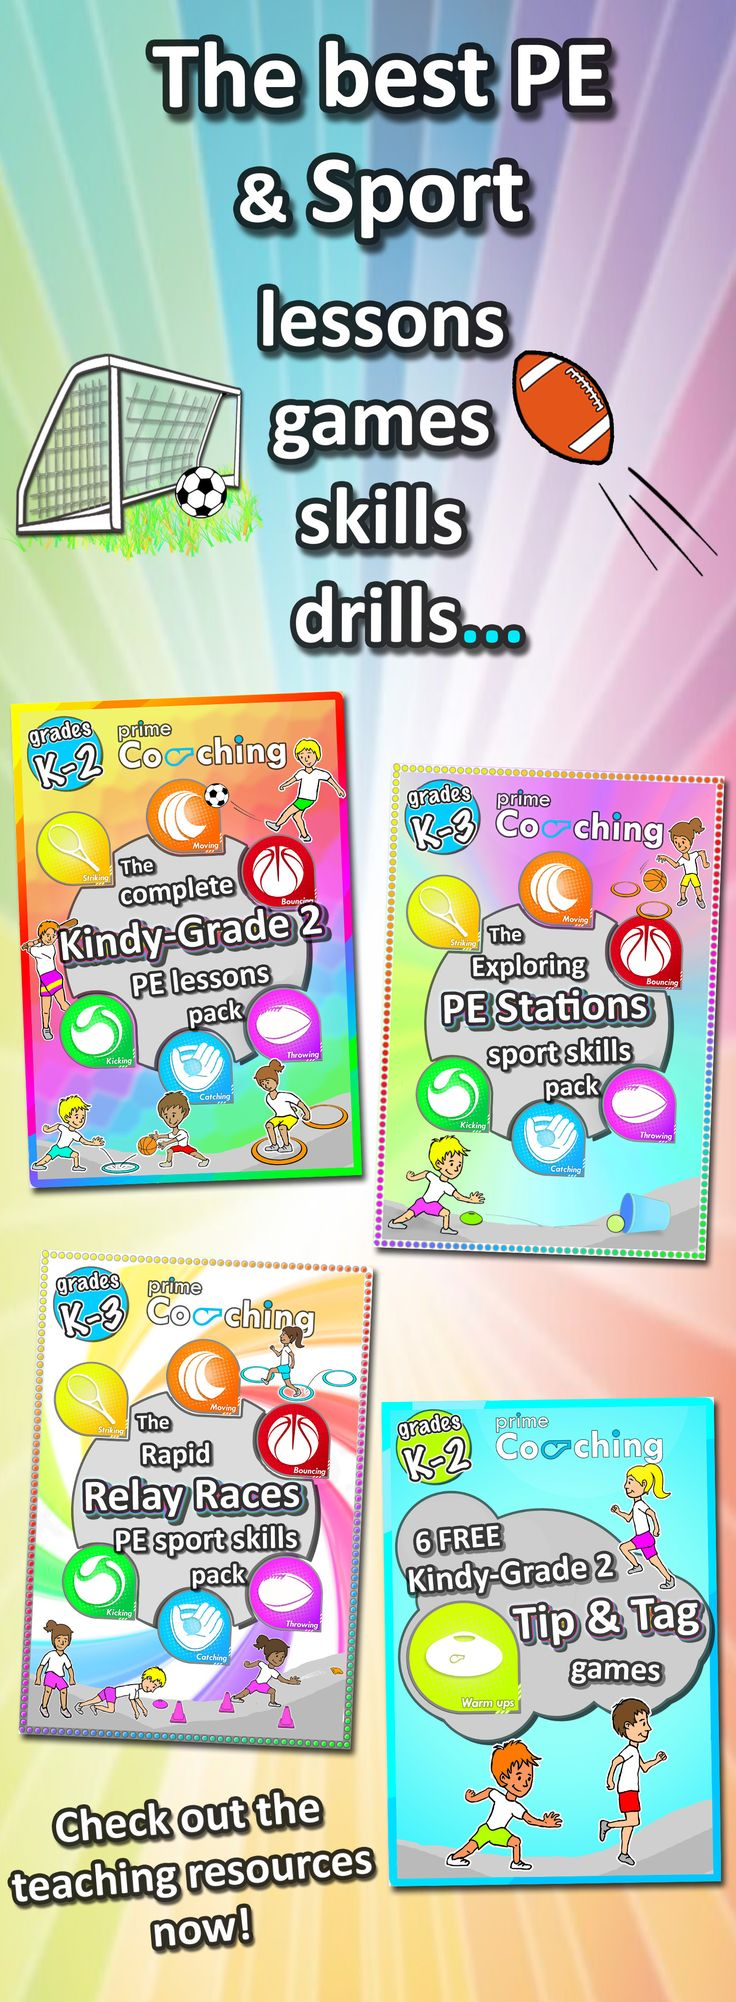 Tag/lesson plans - Pe Games Resources Skills Sport Kids Elementary School Lesson Plans